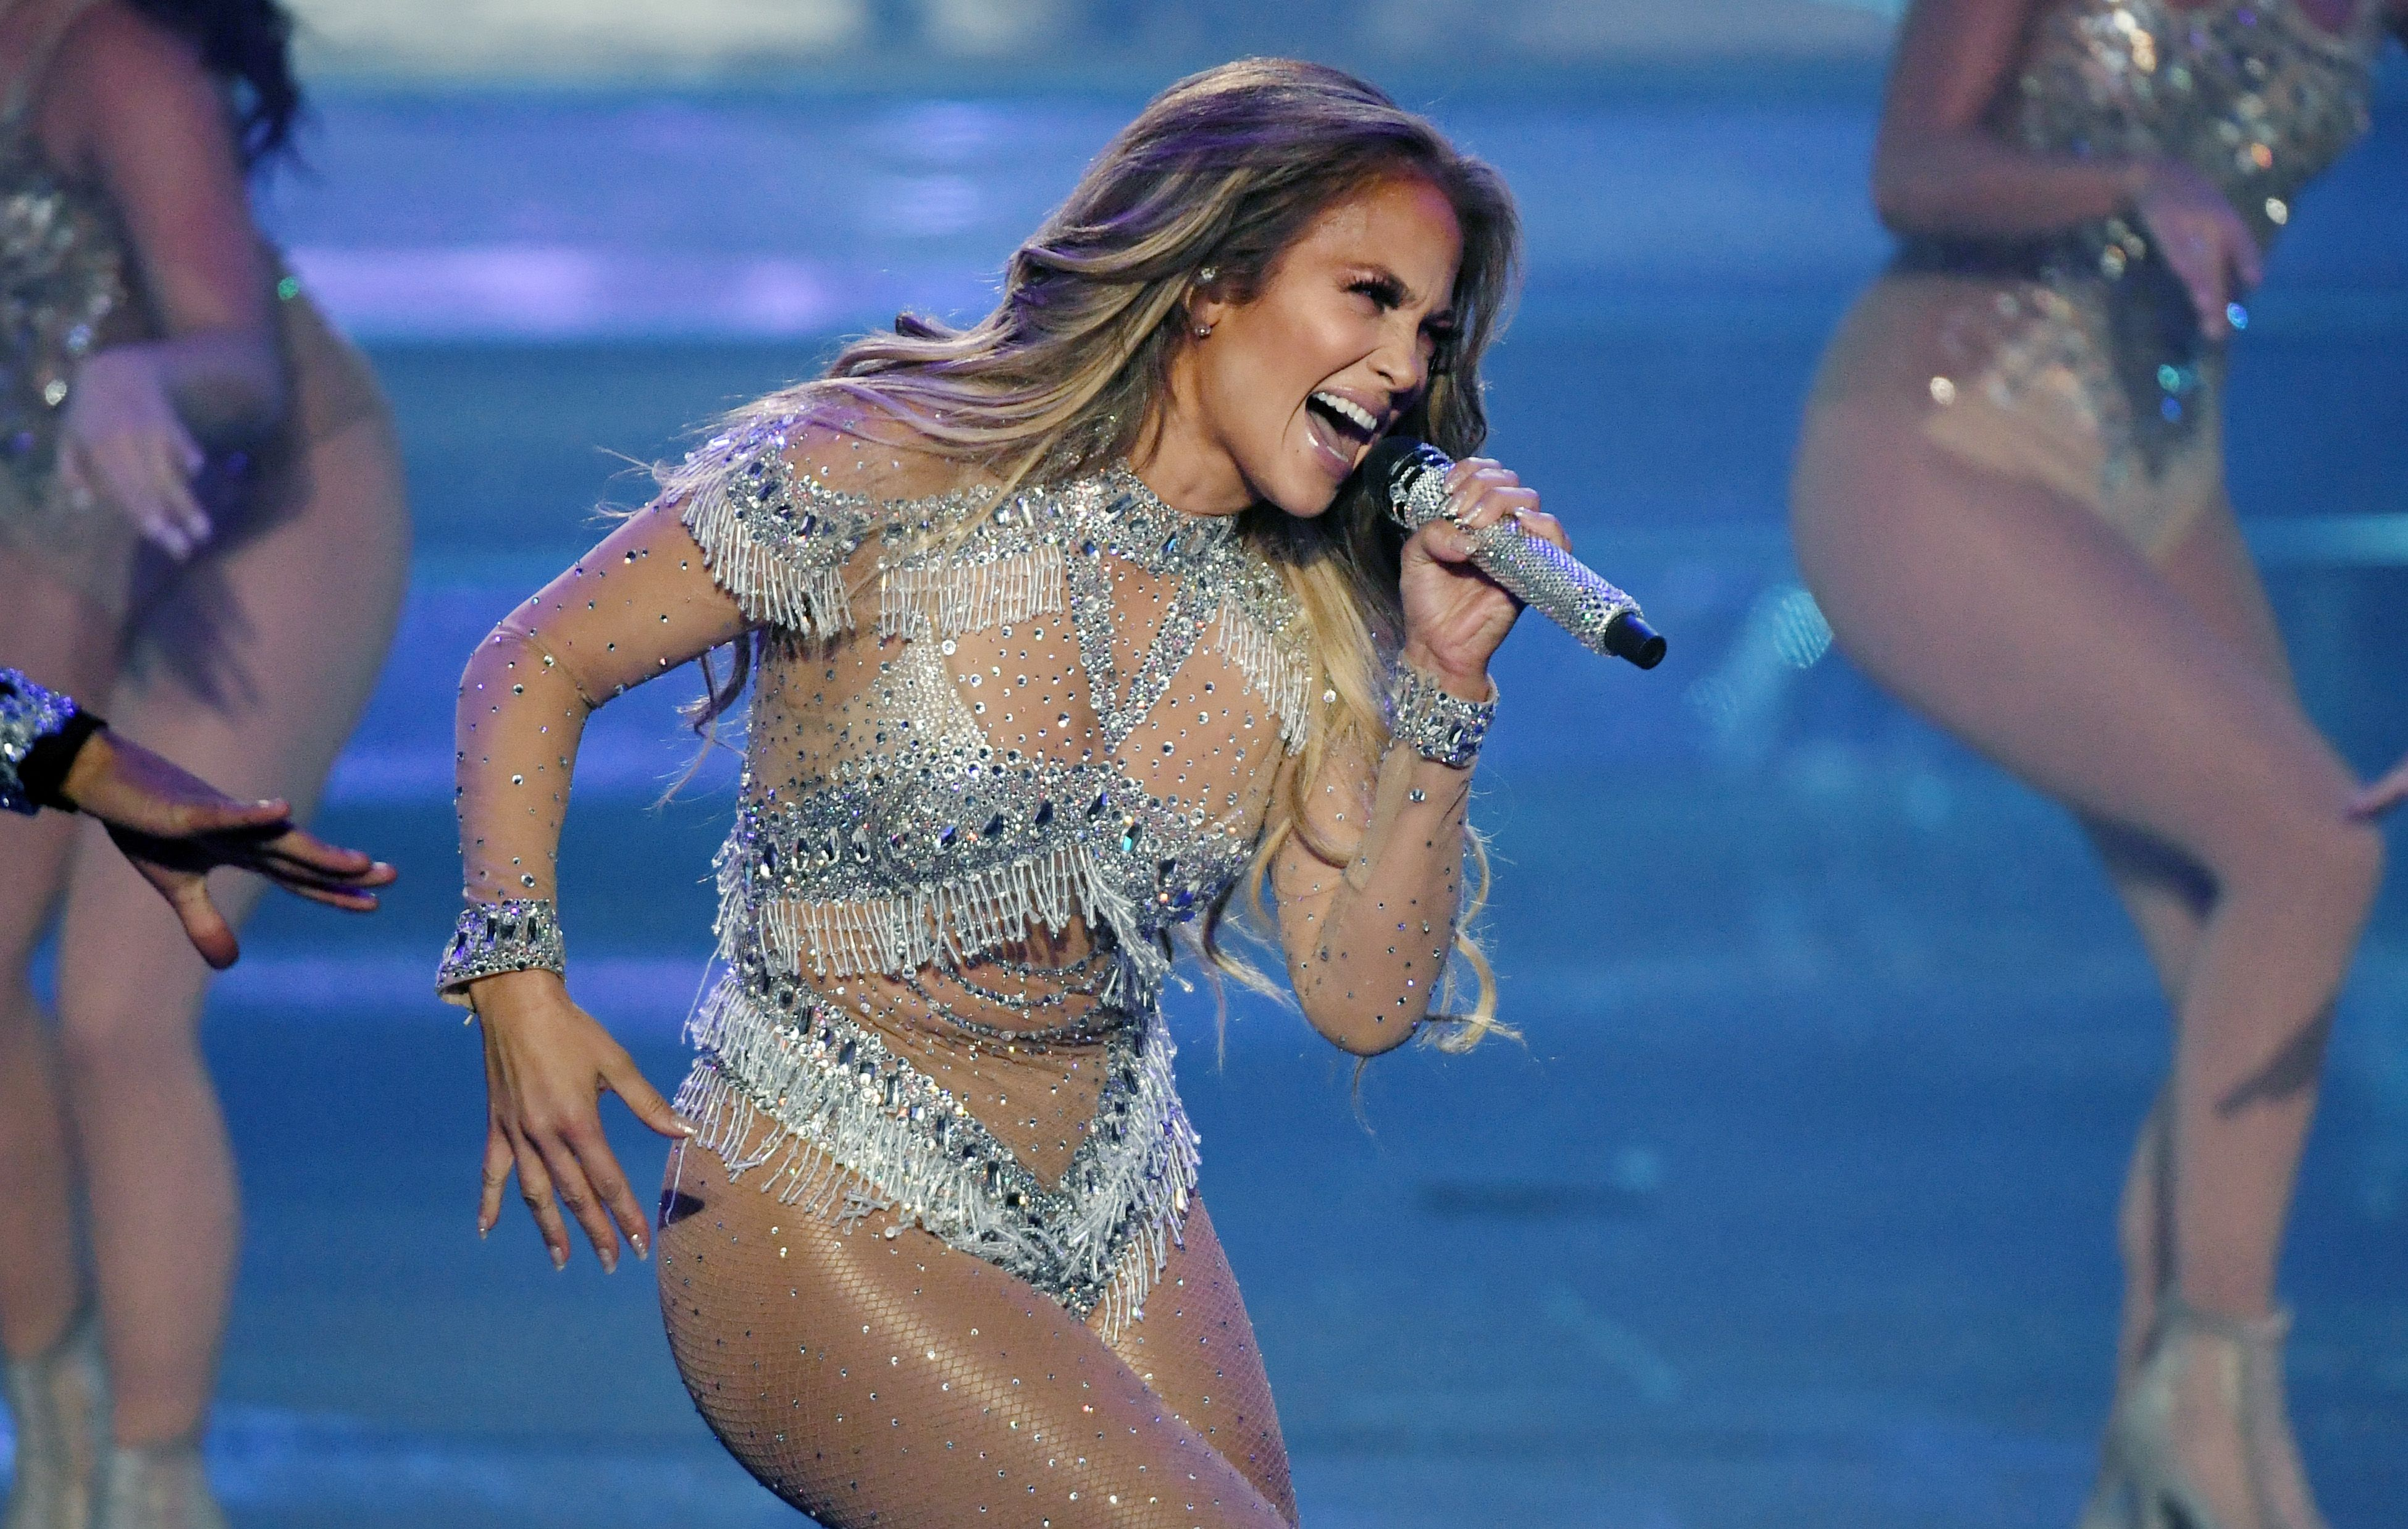 Jennifer Lopez Reschedules Her NYC Concert After It Was Evacuated Due to Blackout